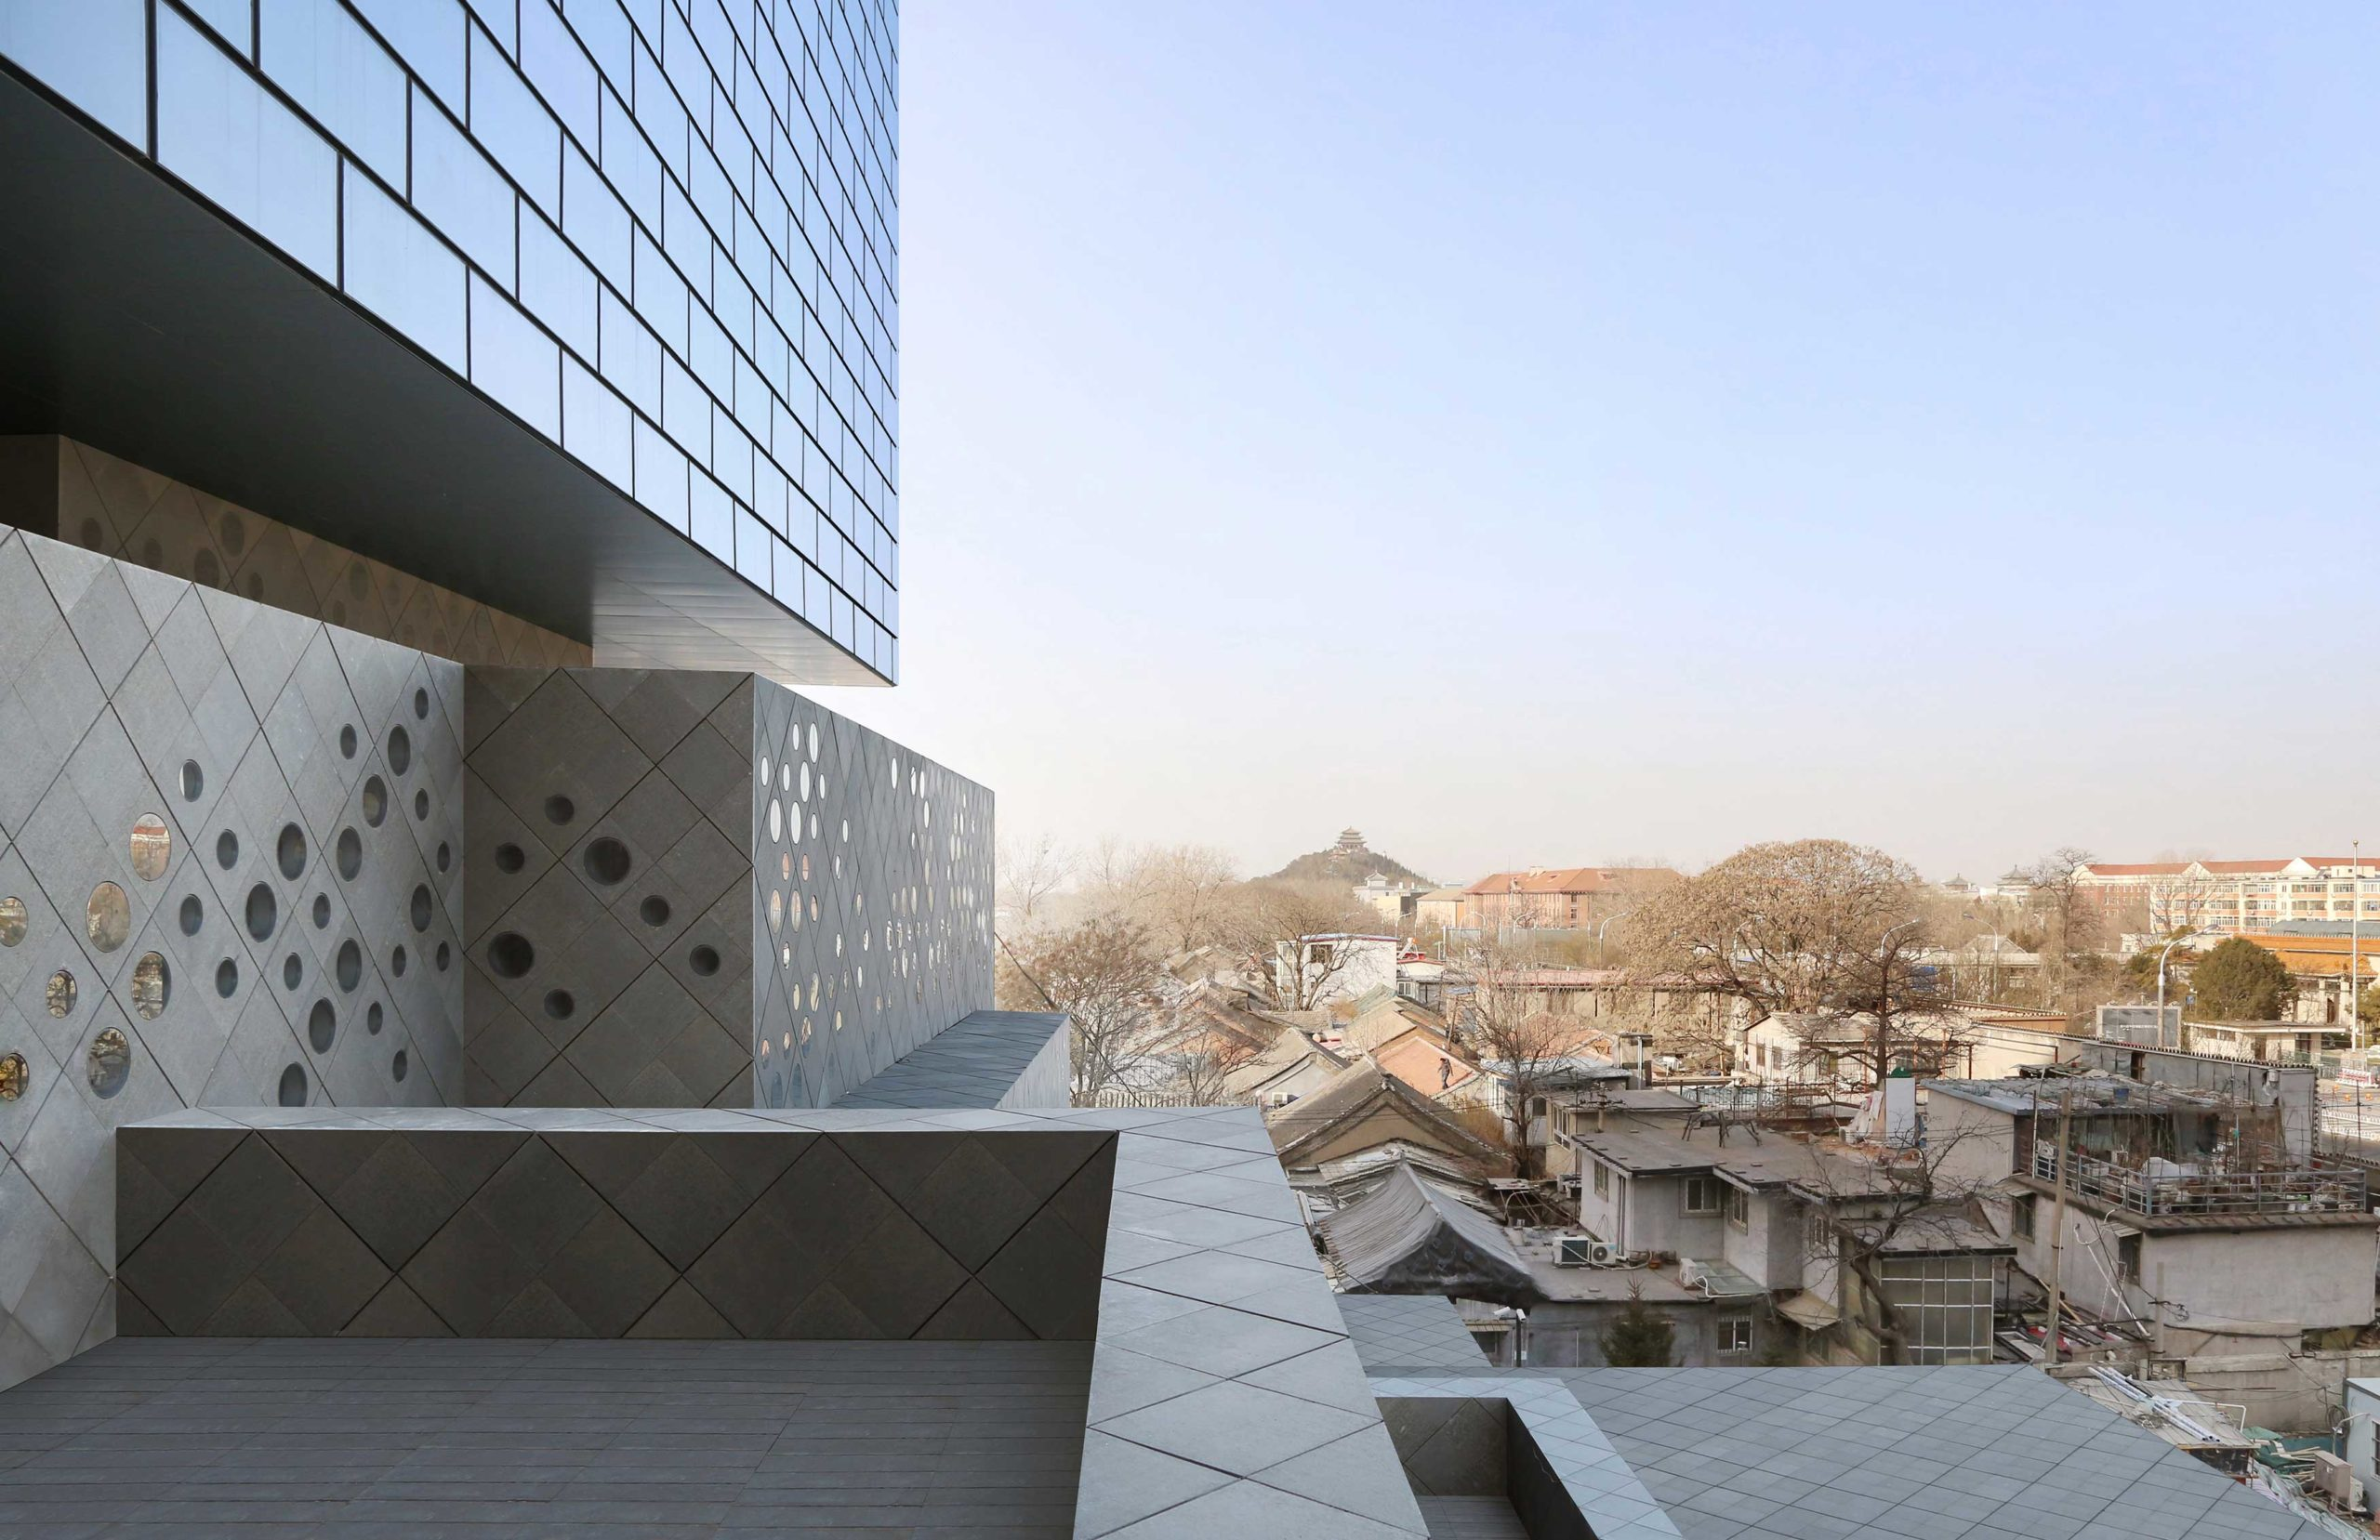 Guardian Art Center in Beijing designed by Buro Ole Scheeren